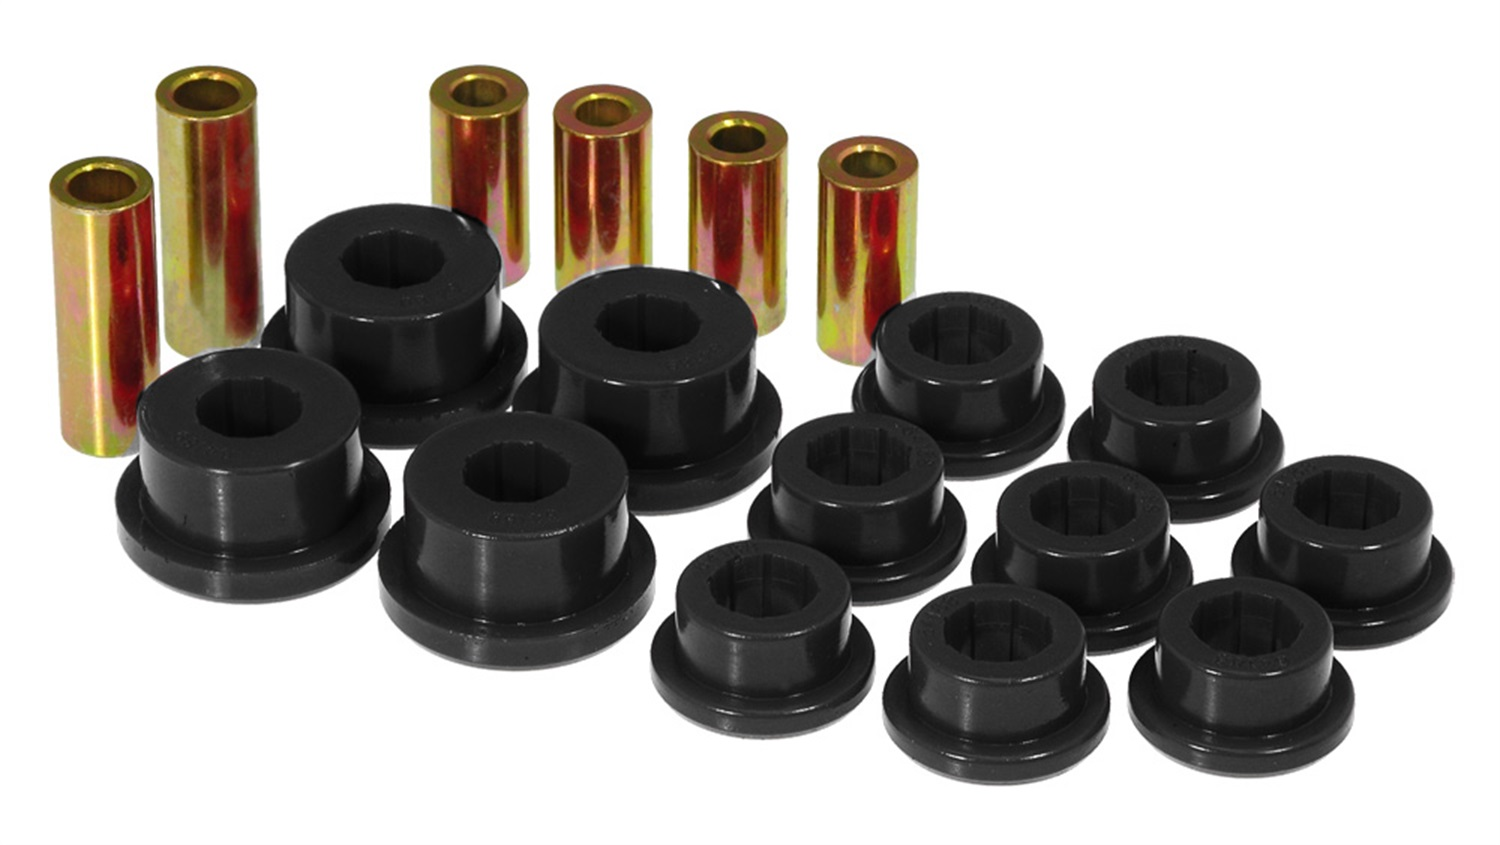 Prothane 13-201-BL Control Arm Bushing Kit Fits 95-99 Eclipse Talon